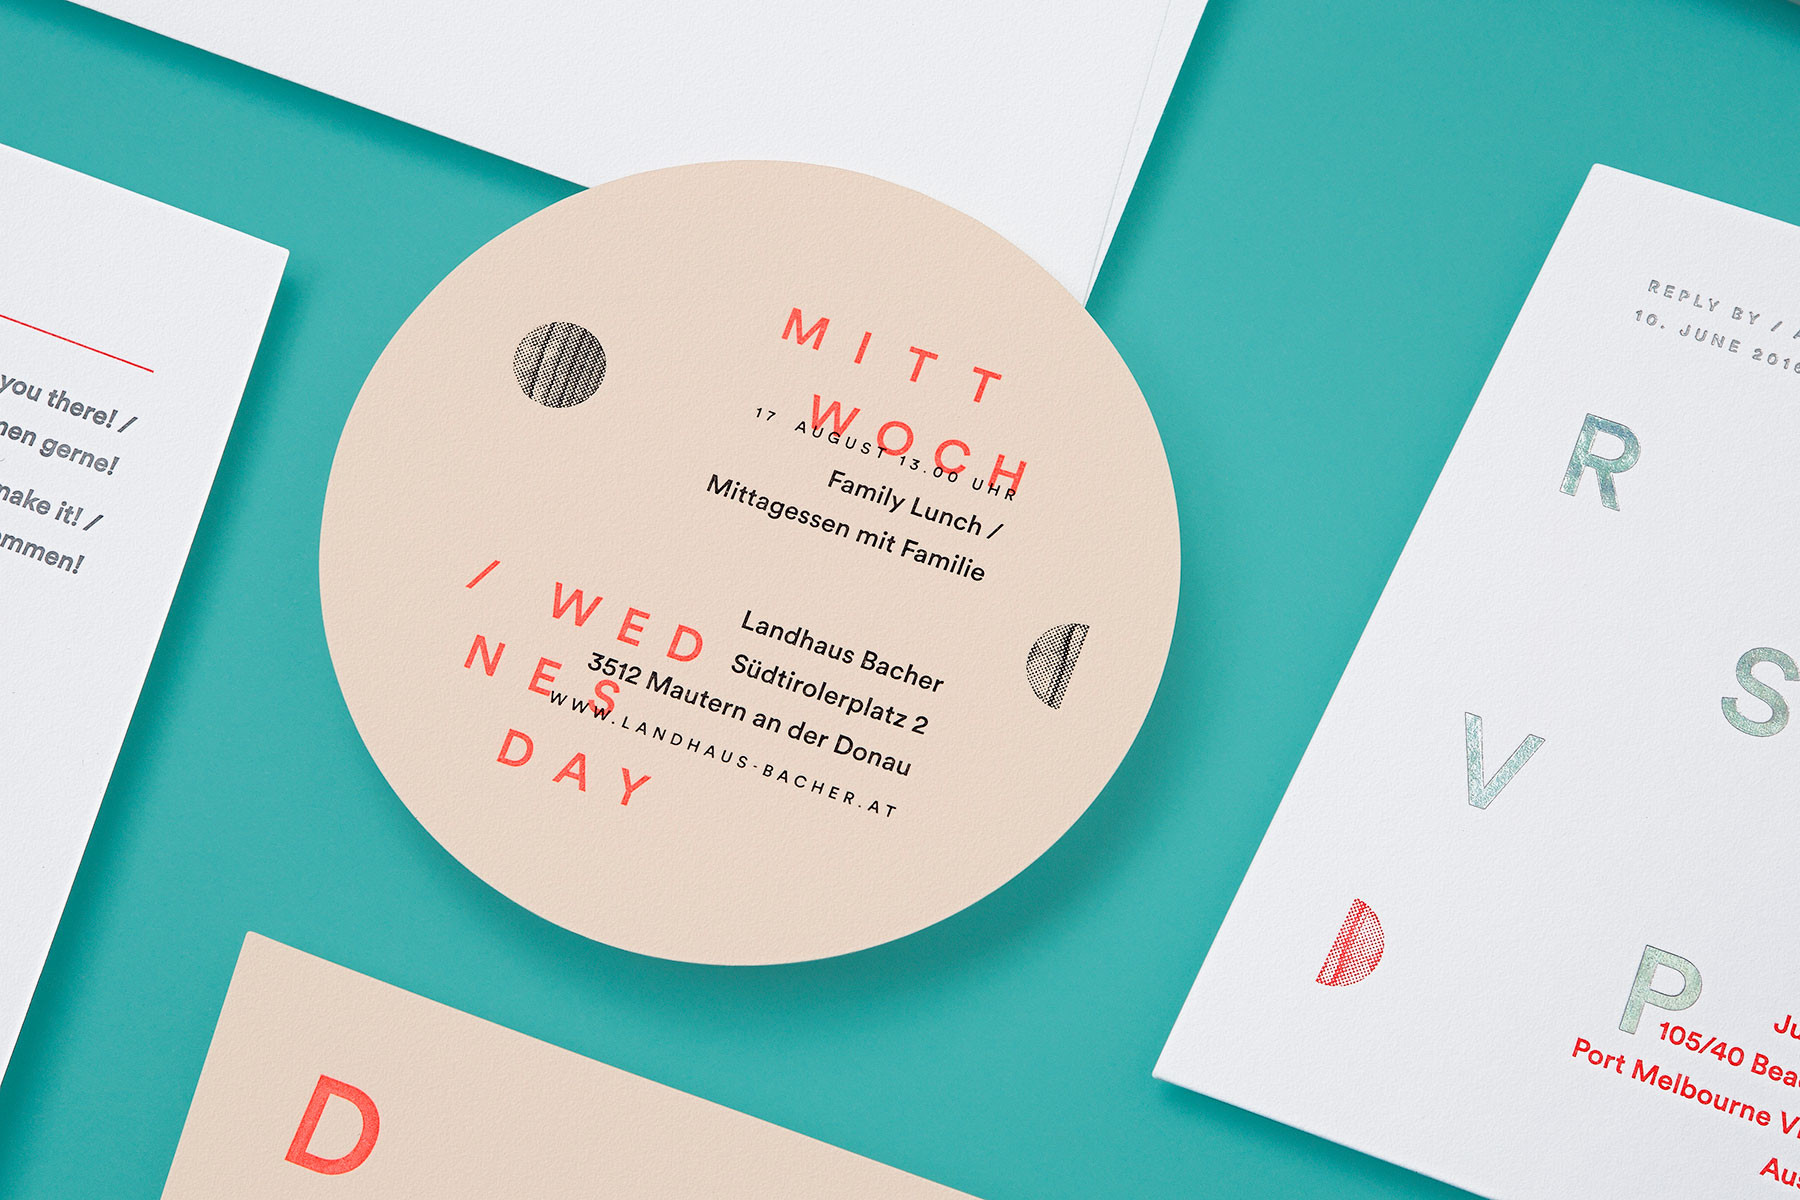 Modern minimalist letterpress wedding invitations for Julia and Mark on Colorplan 2